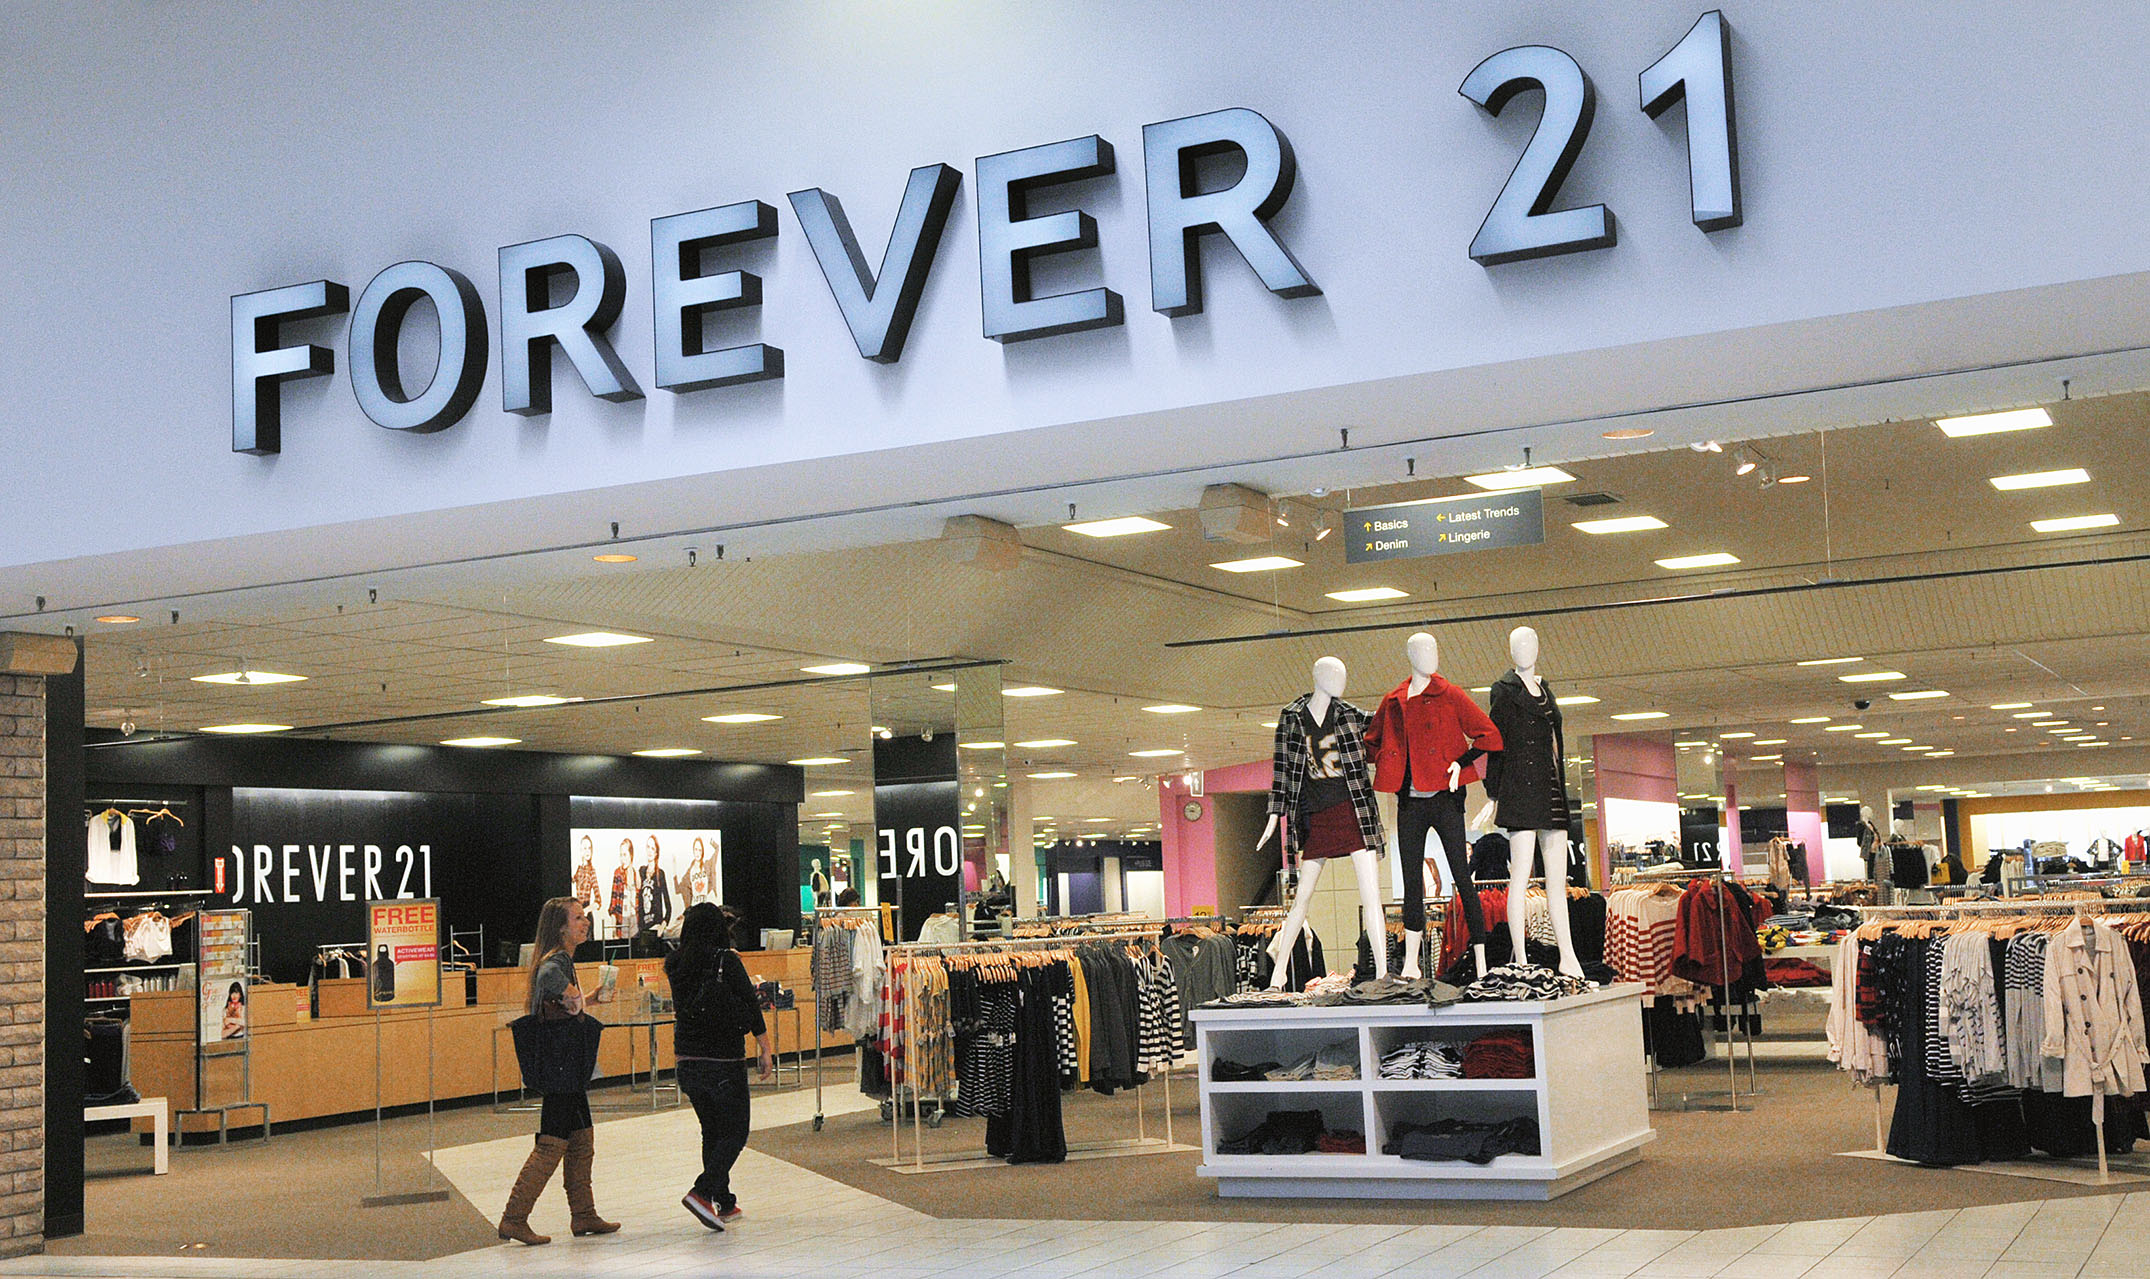 Shoppers walk into a Forever 21 store.